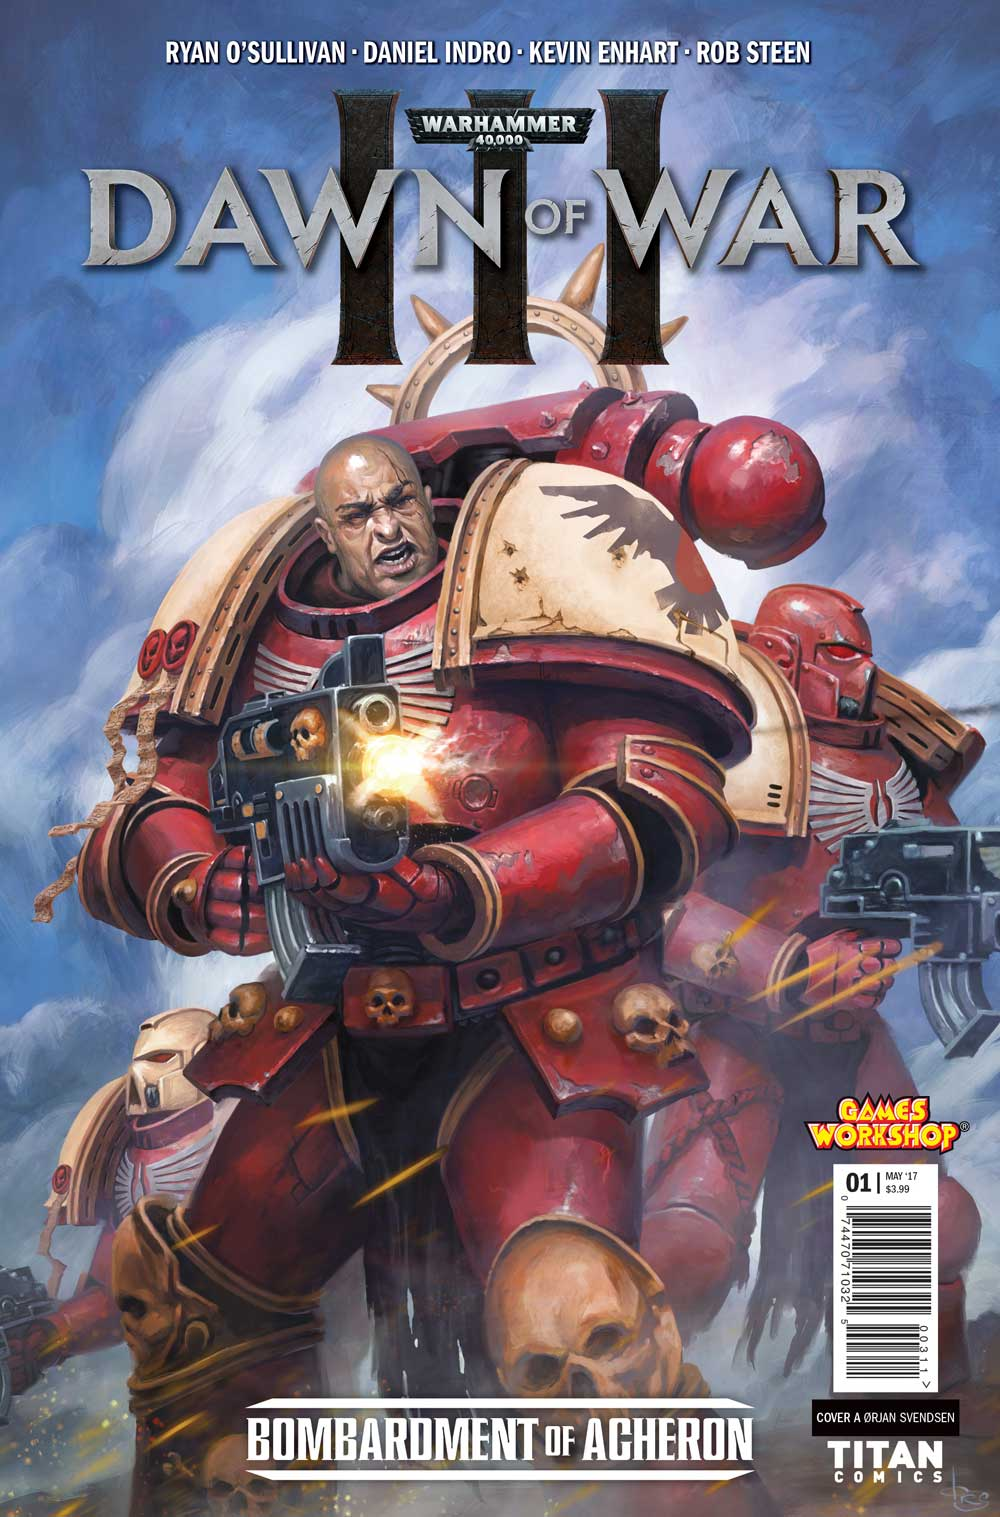 dow3_comic_cover_for_press-release